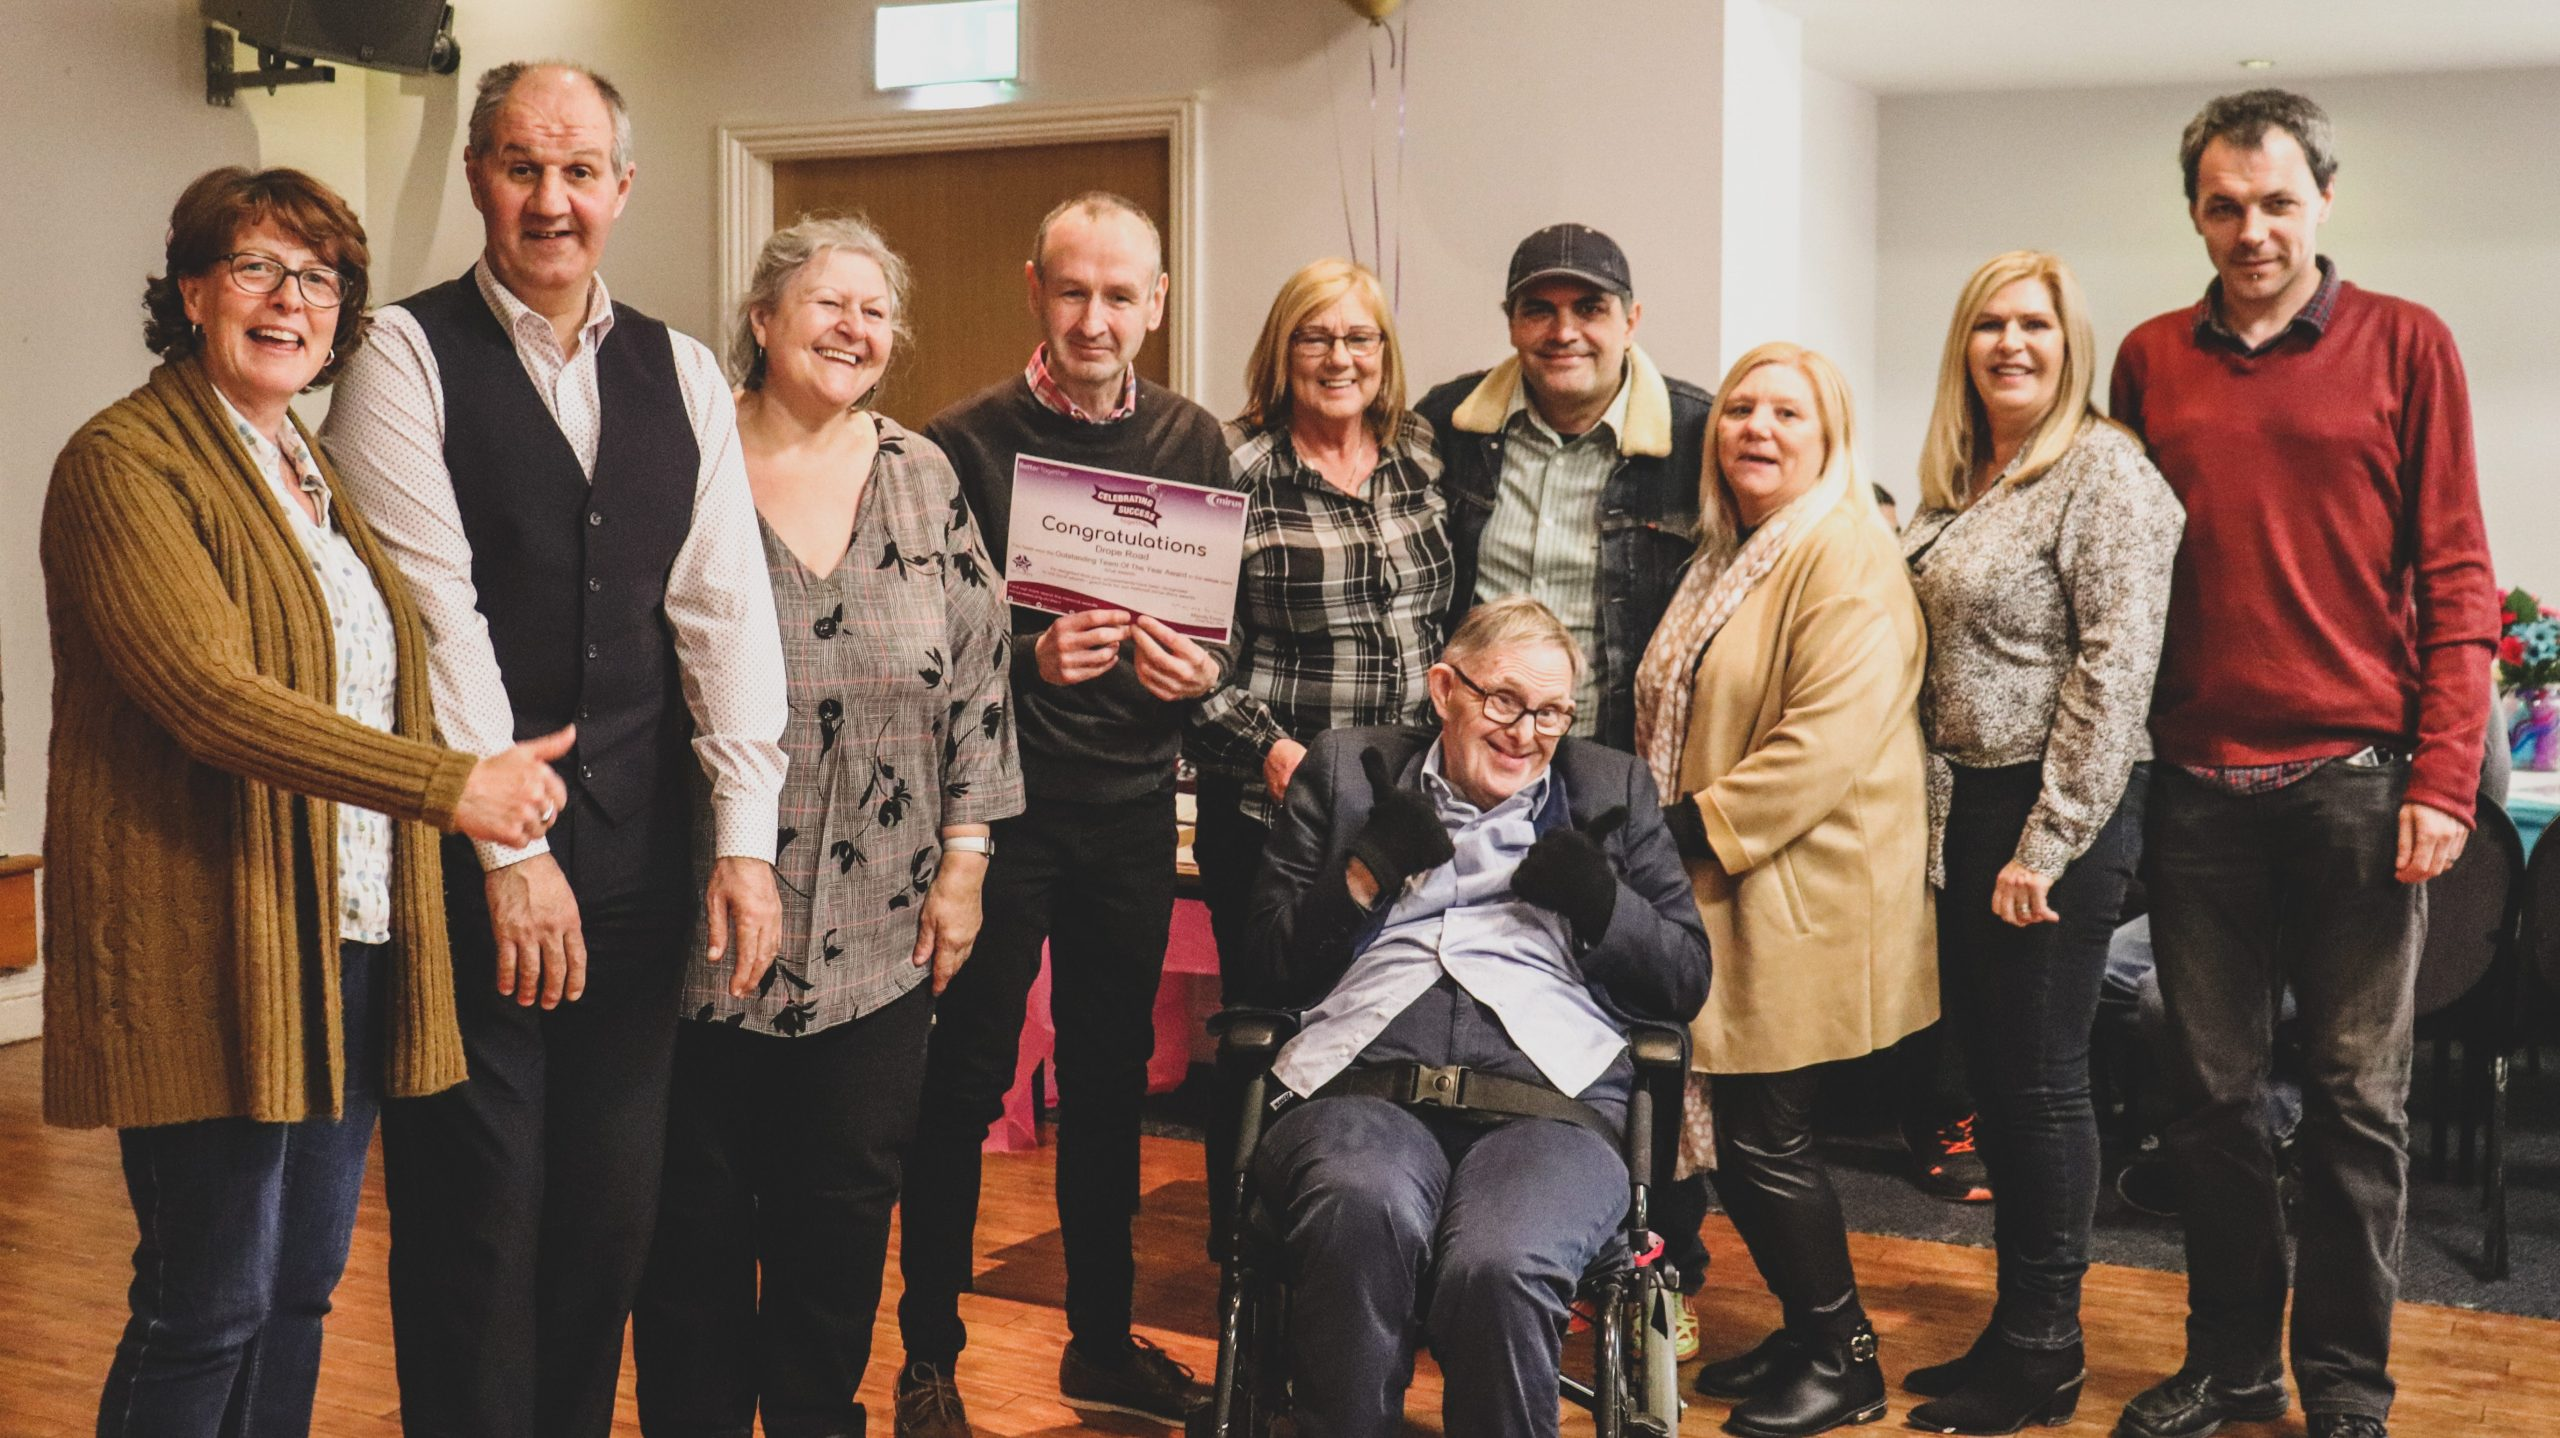 Cardiff staff and people supported celebrate success at one of our events